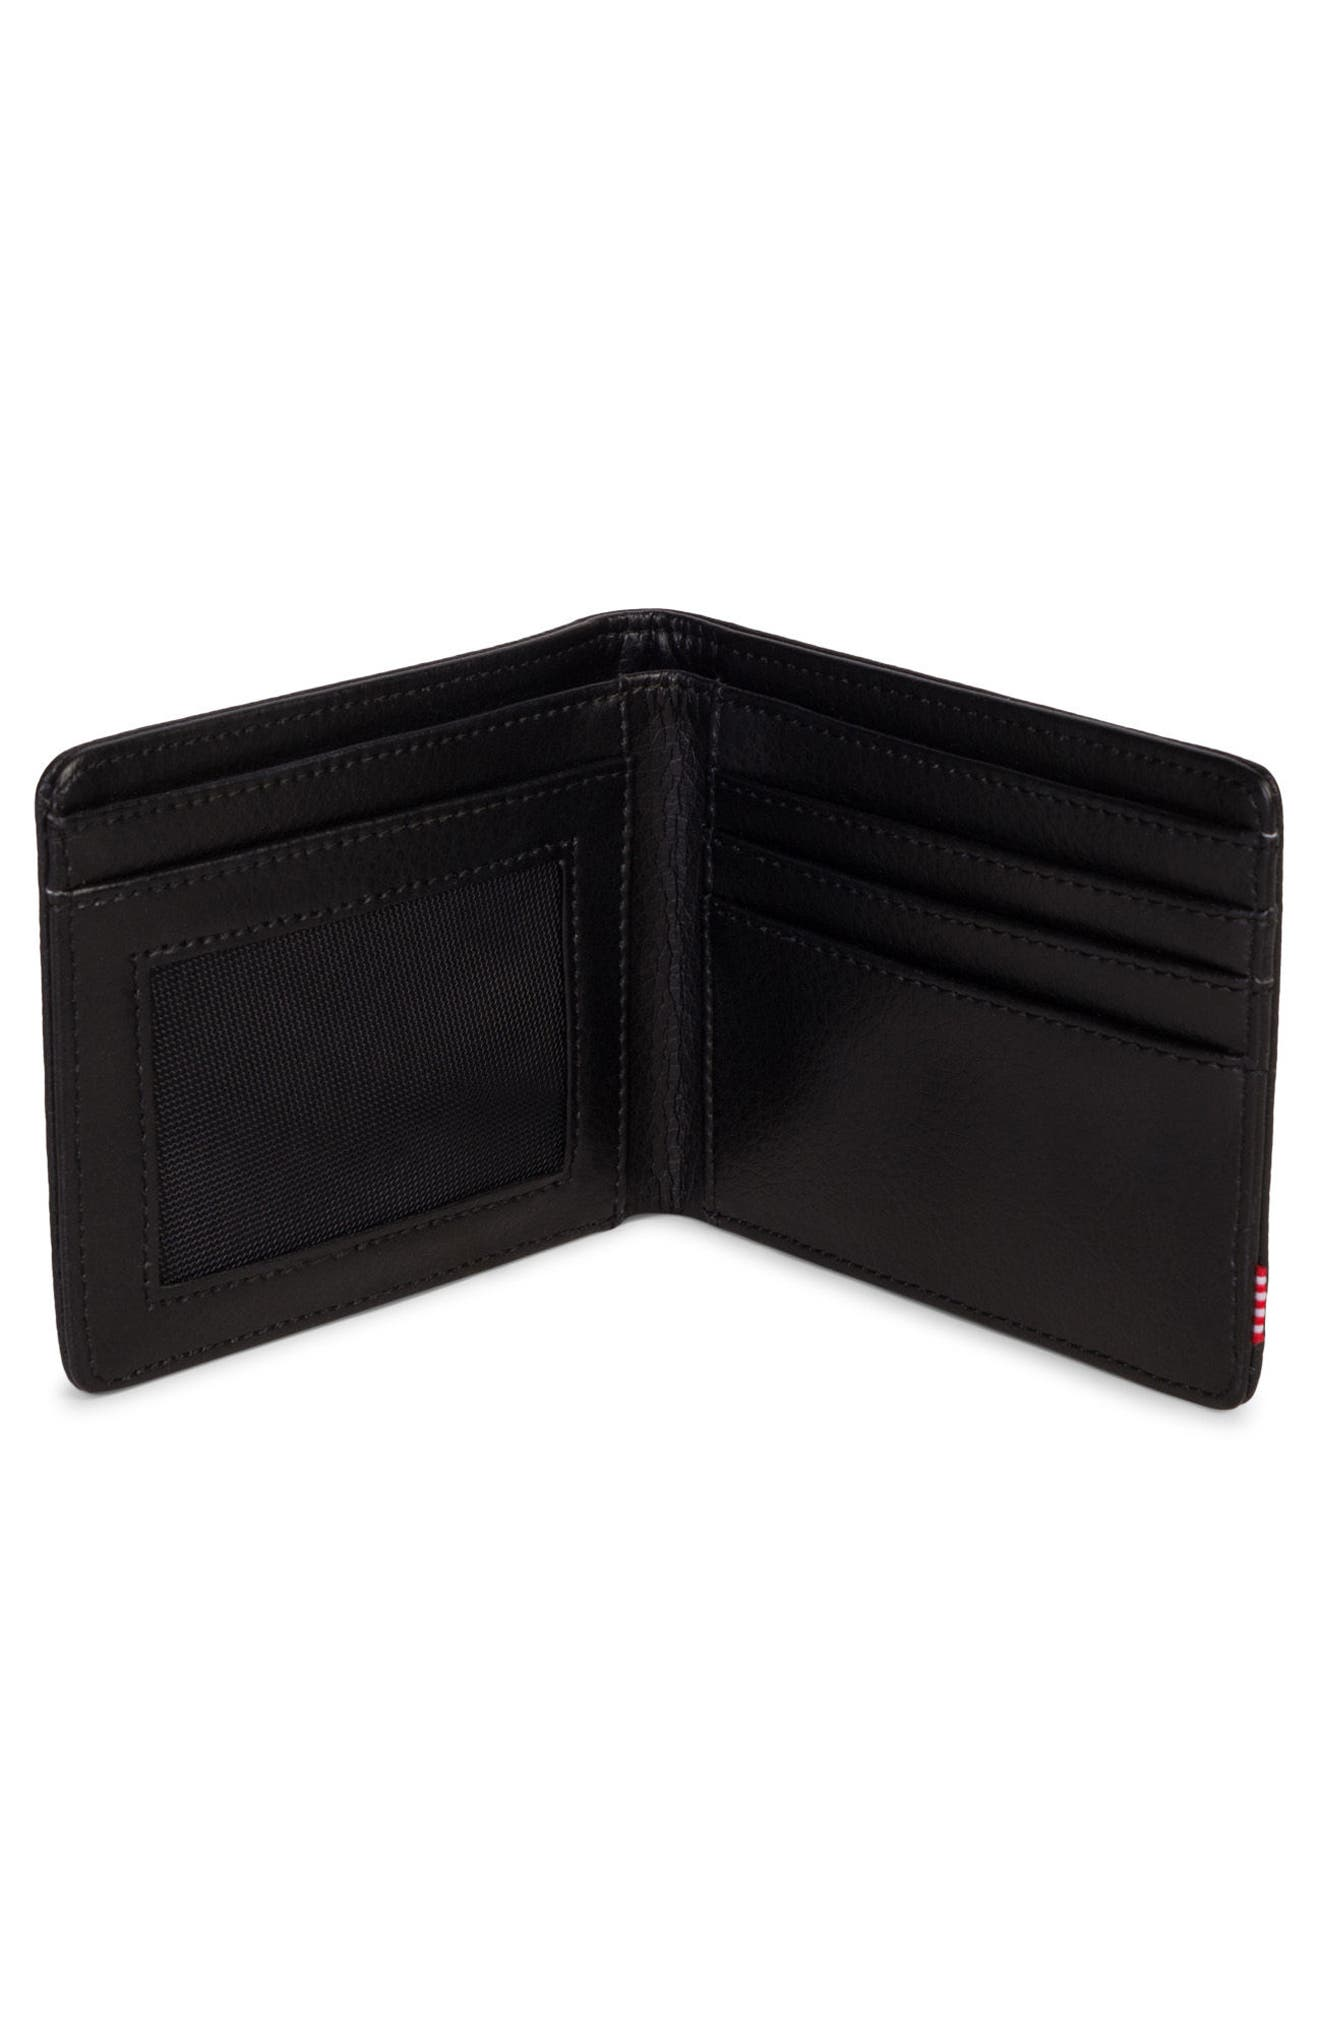 Hank Leather Wallet,                             Alternate thumbnail 2, color,                             Black Pebbled Leather